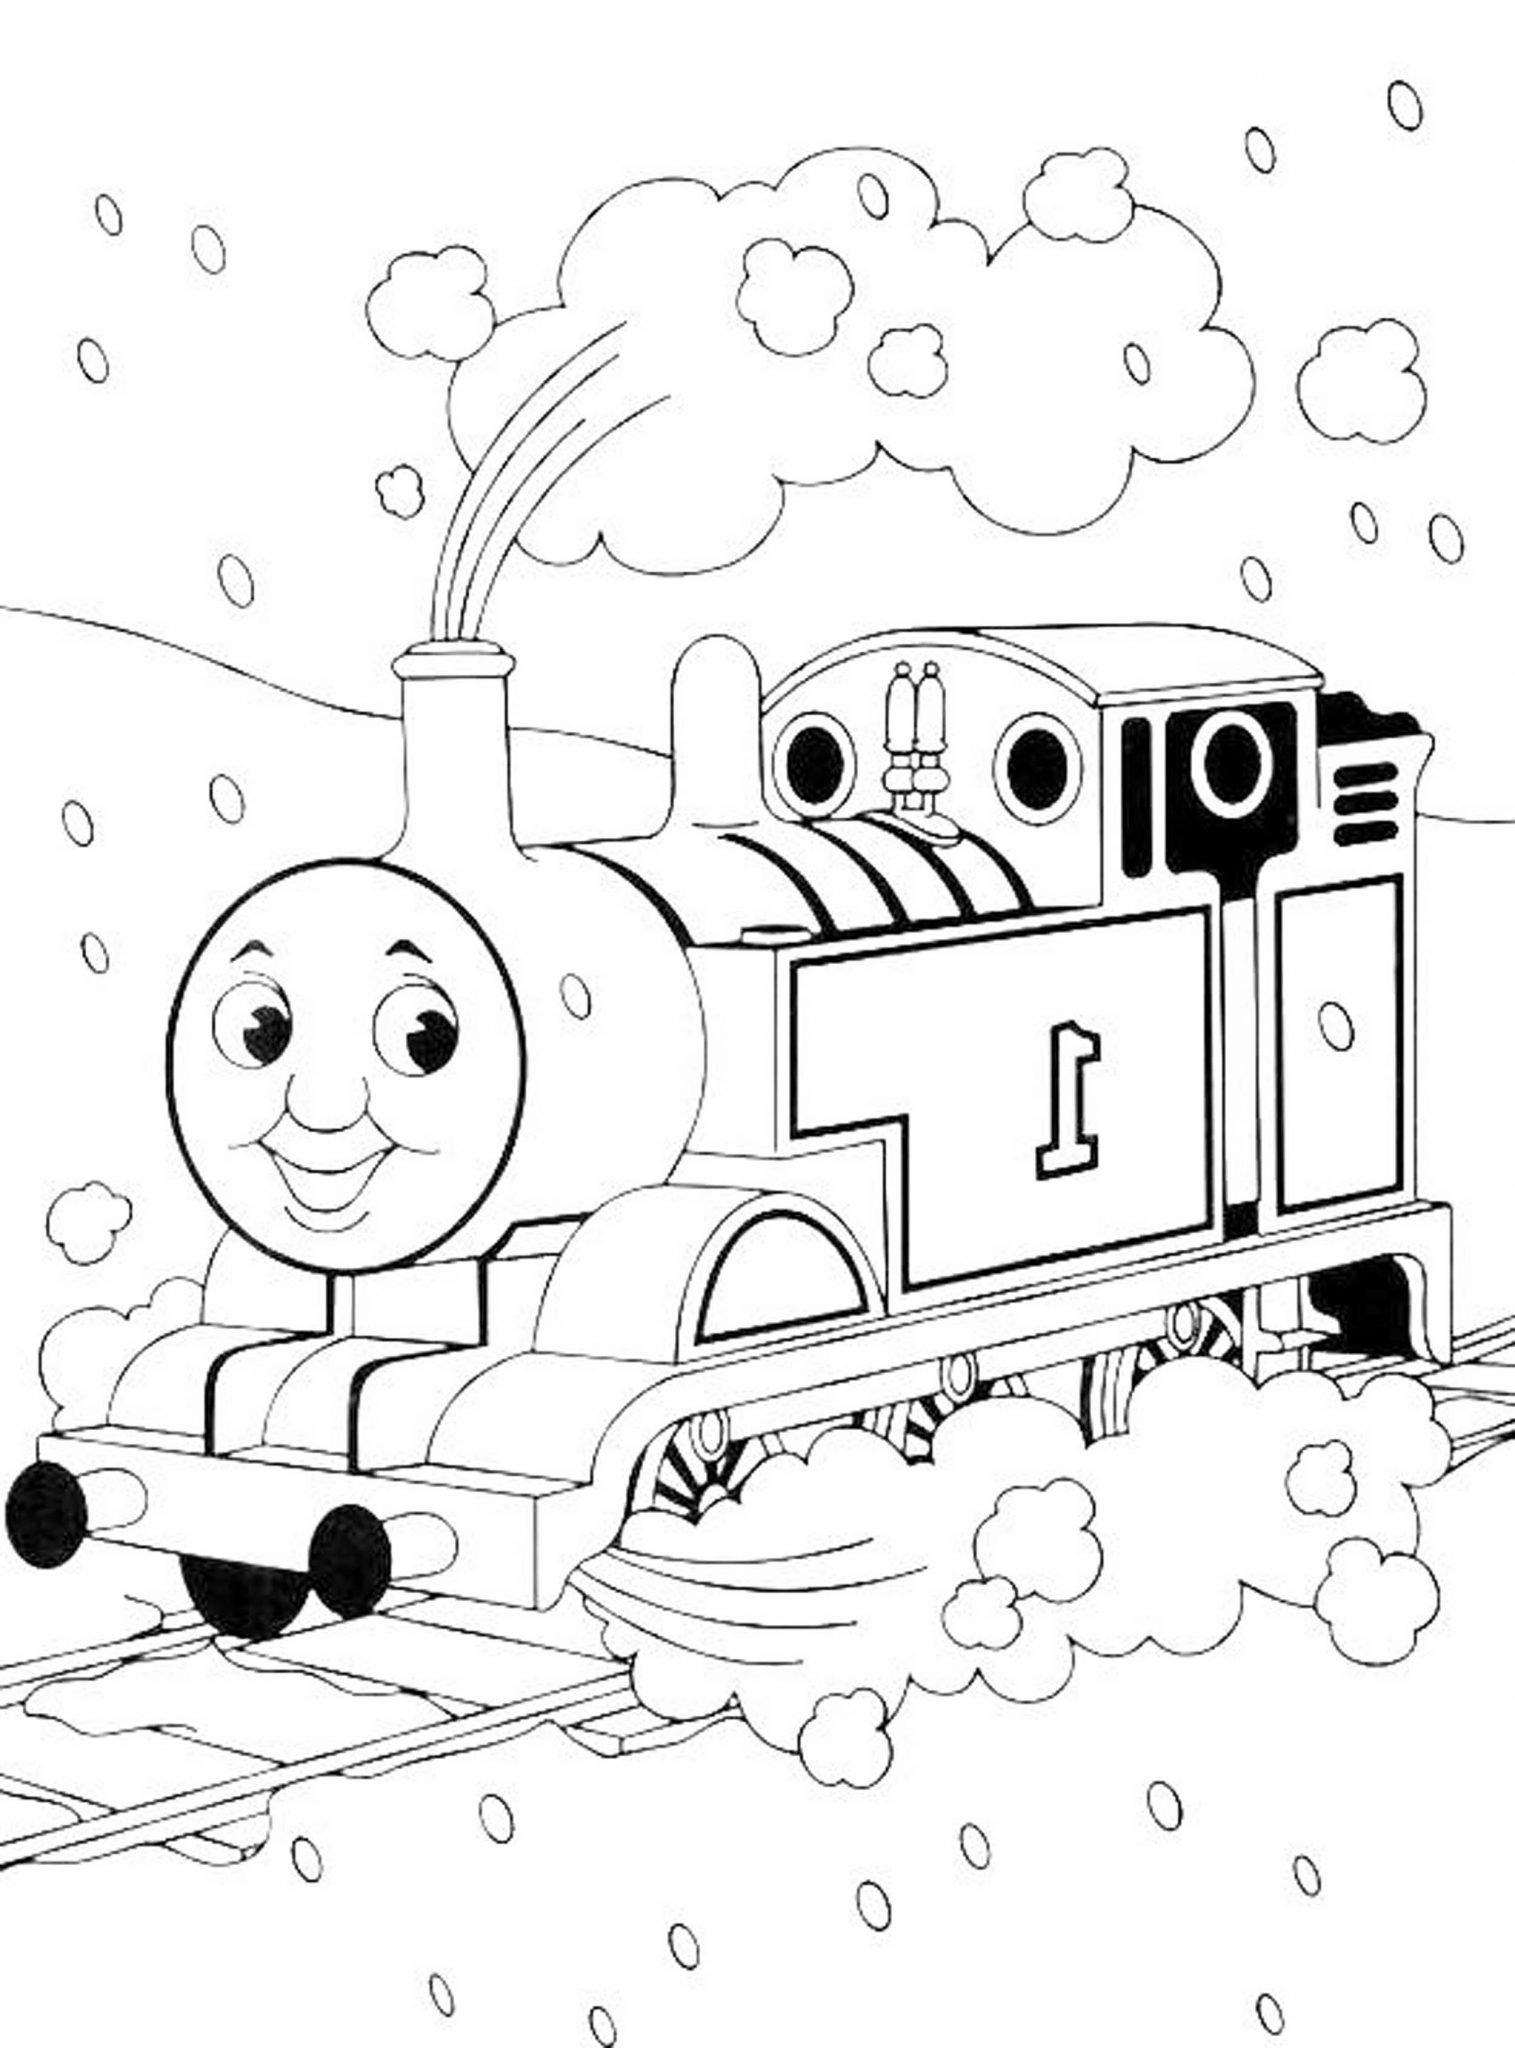 thomas the train color pages thomas the tank engine coloring pages to download and the train thomas color pages